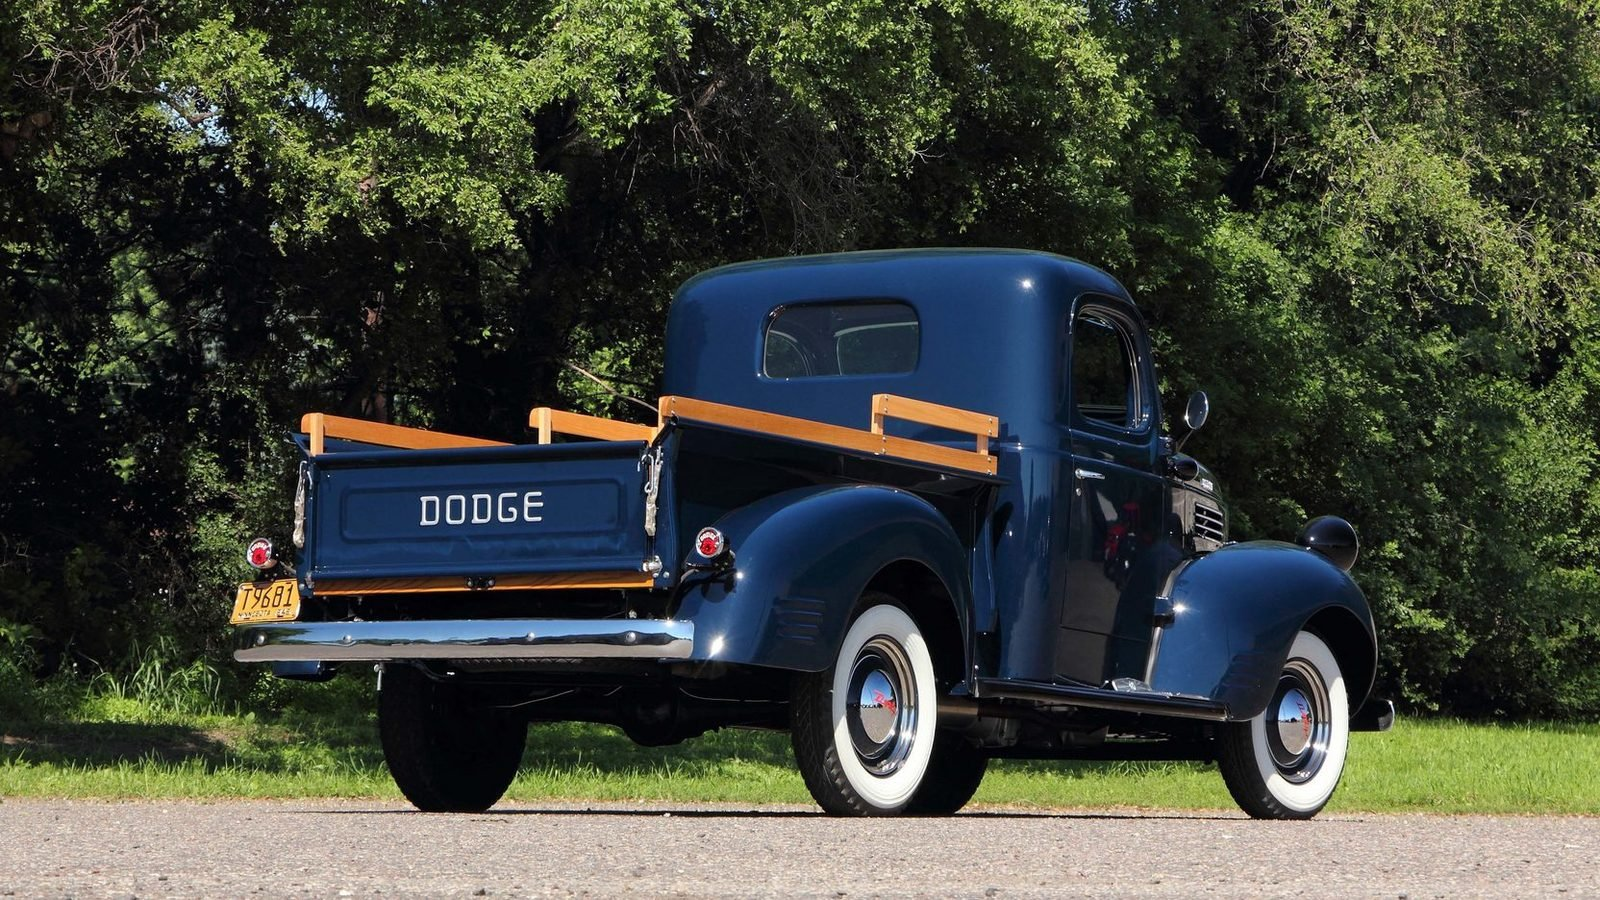 1945 dodge pickup picture 683323 truck review top speed. Black Bedroom Furniture Sets. Home Design Ideas